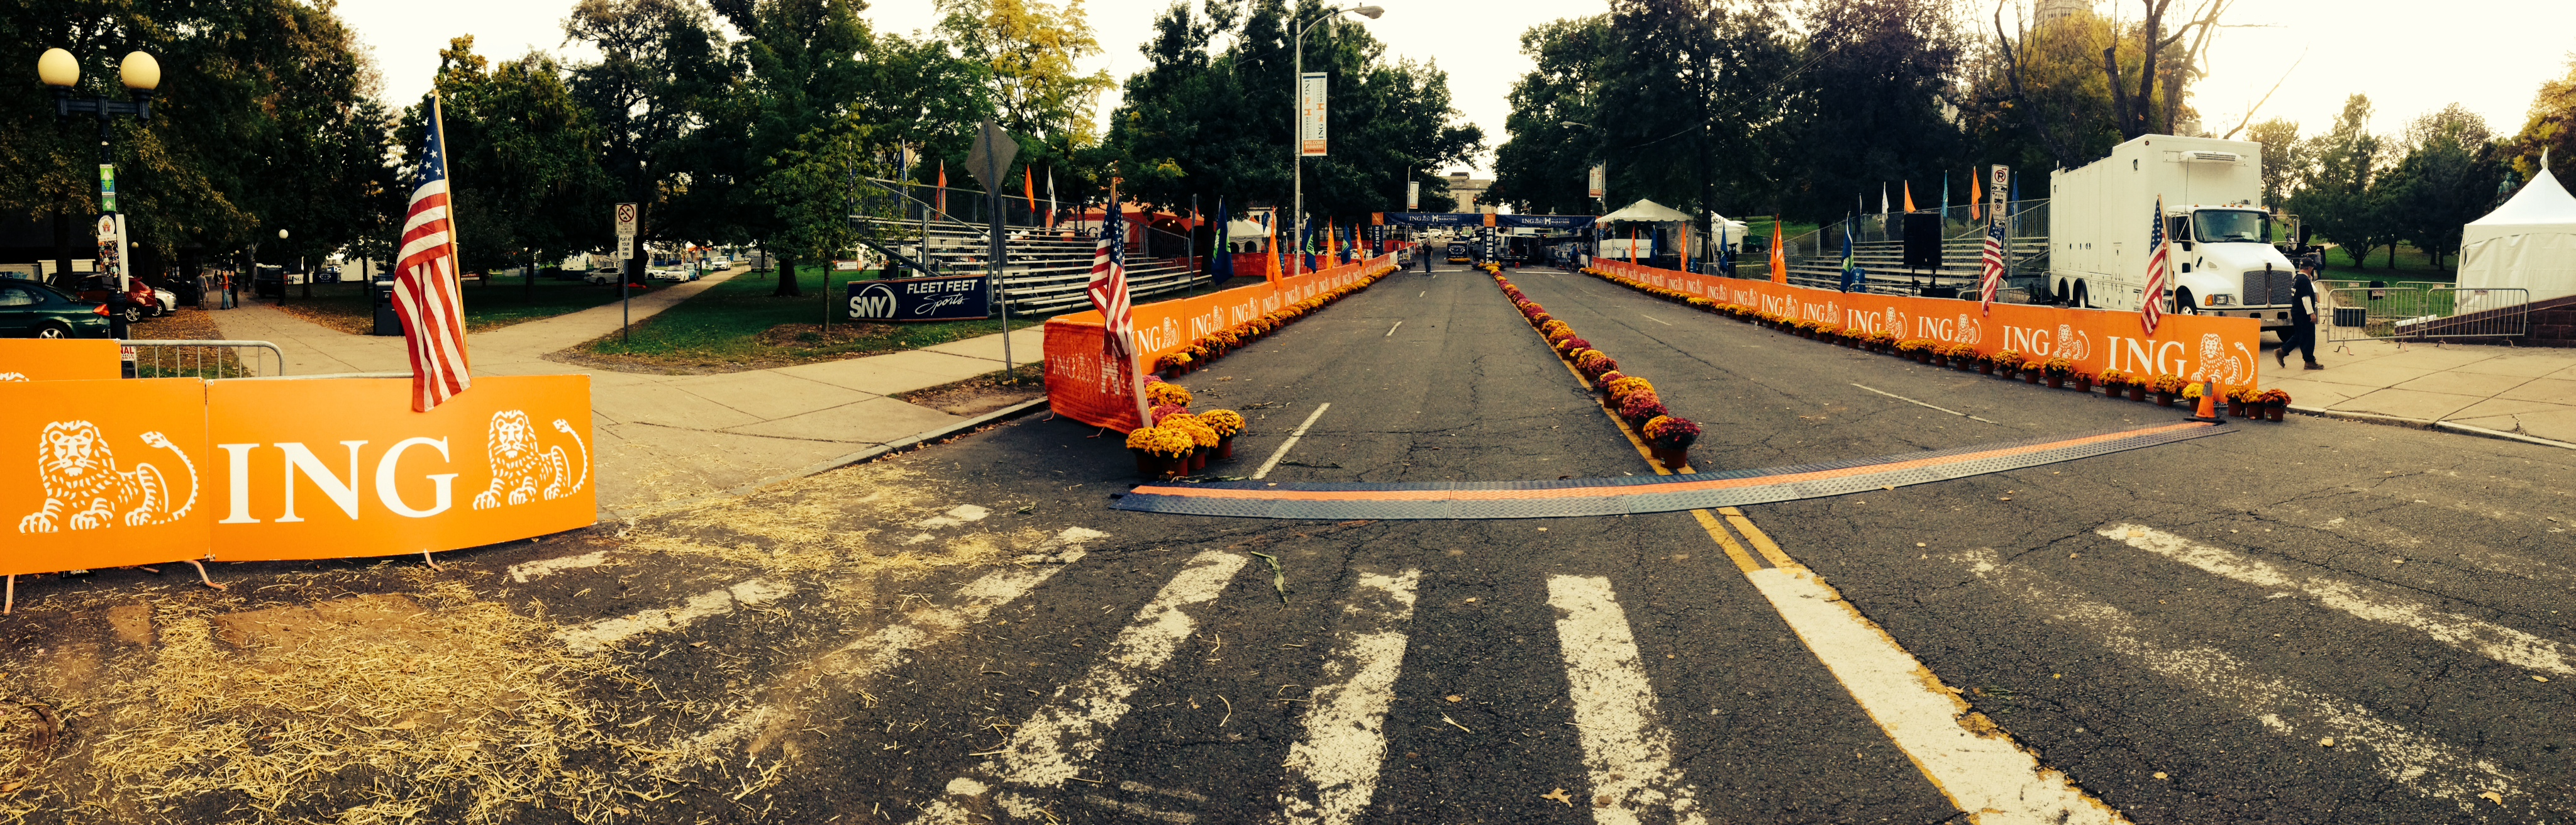 Hartford Marathon Finish Line